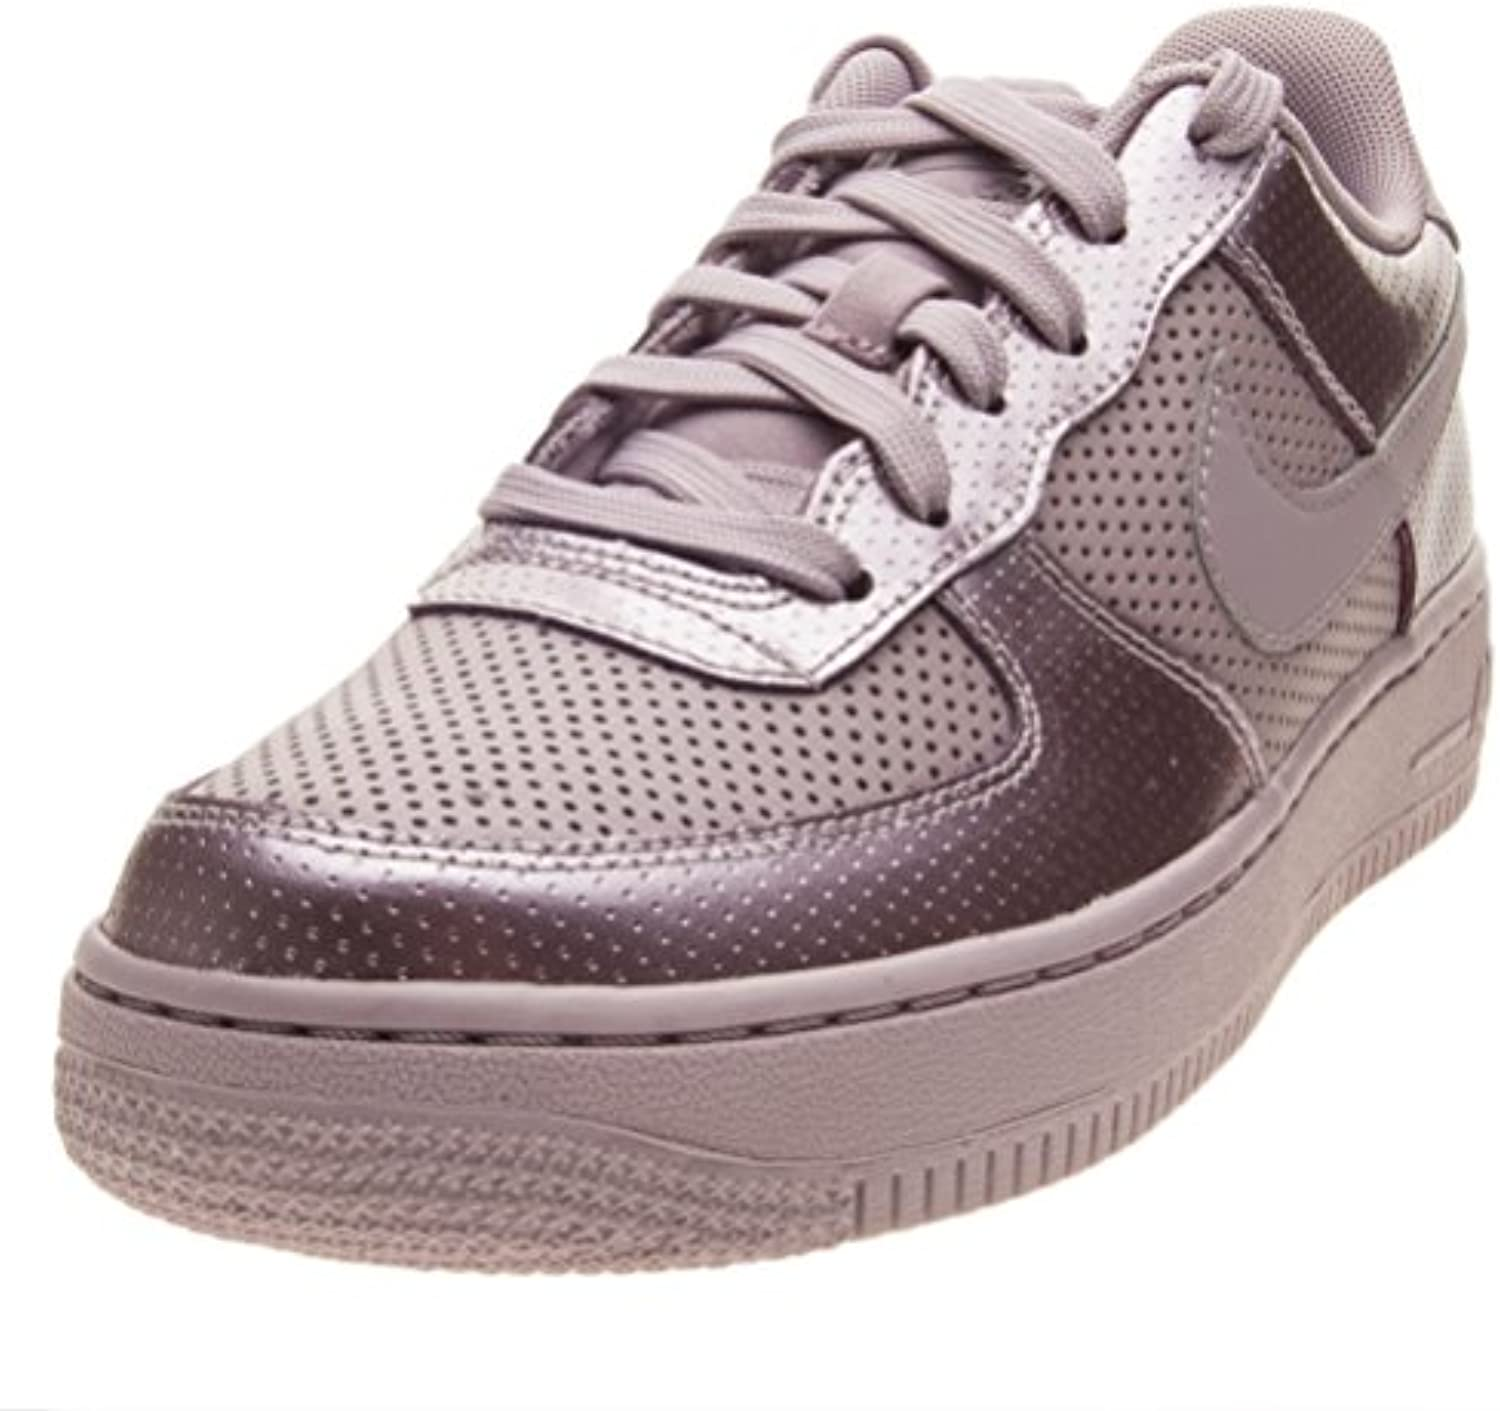 des nike air force 1 lv8 agrave; rose - - rose rose gs 3b61a5